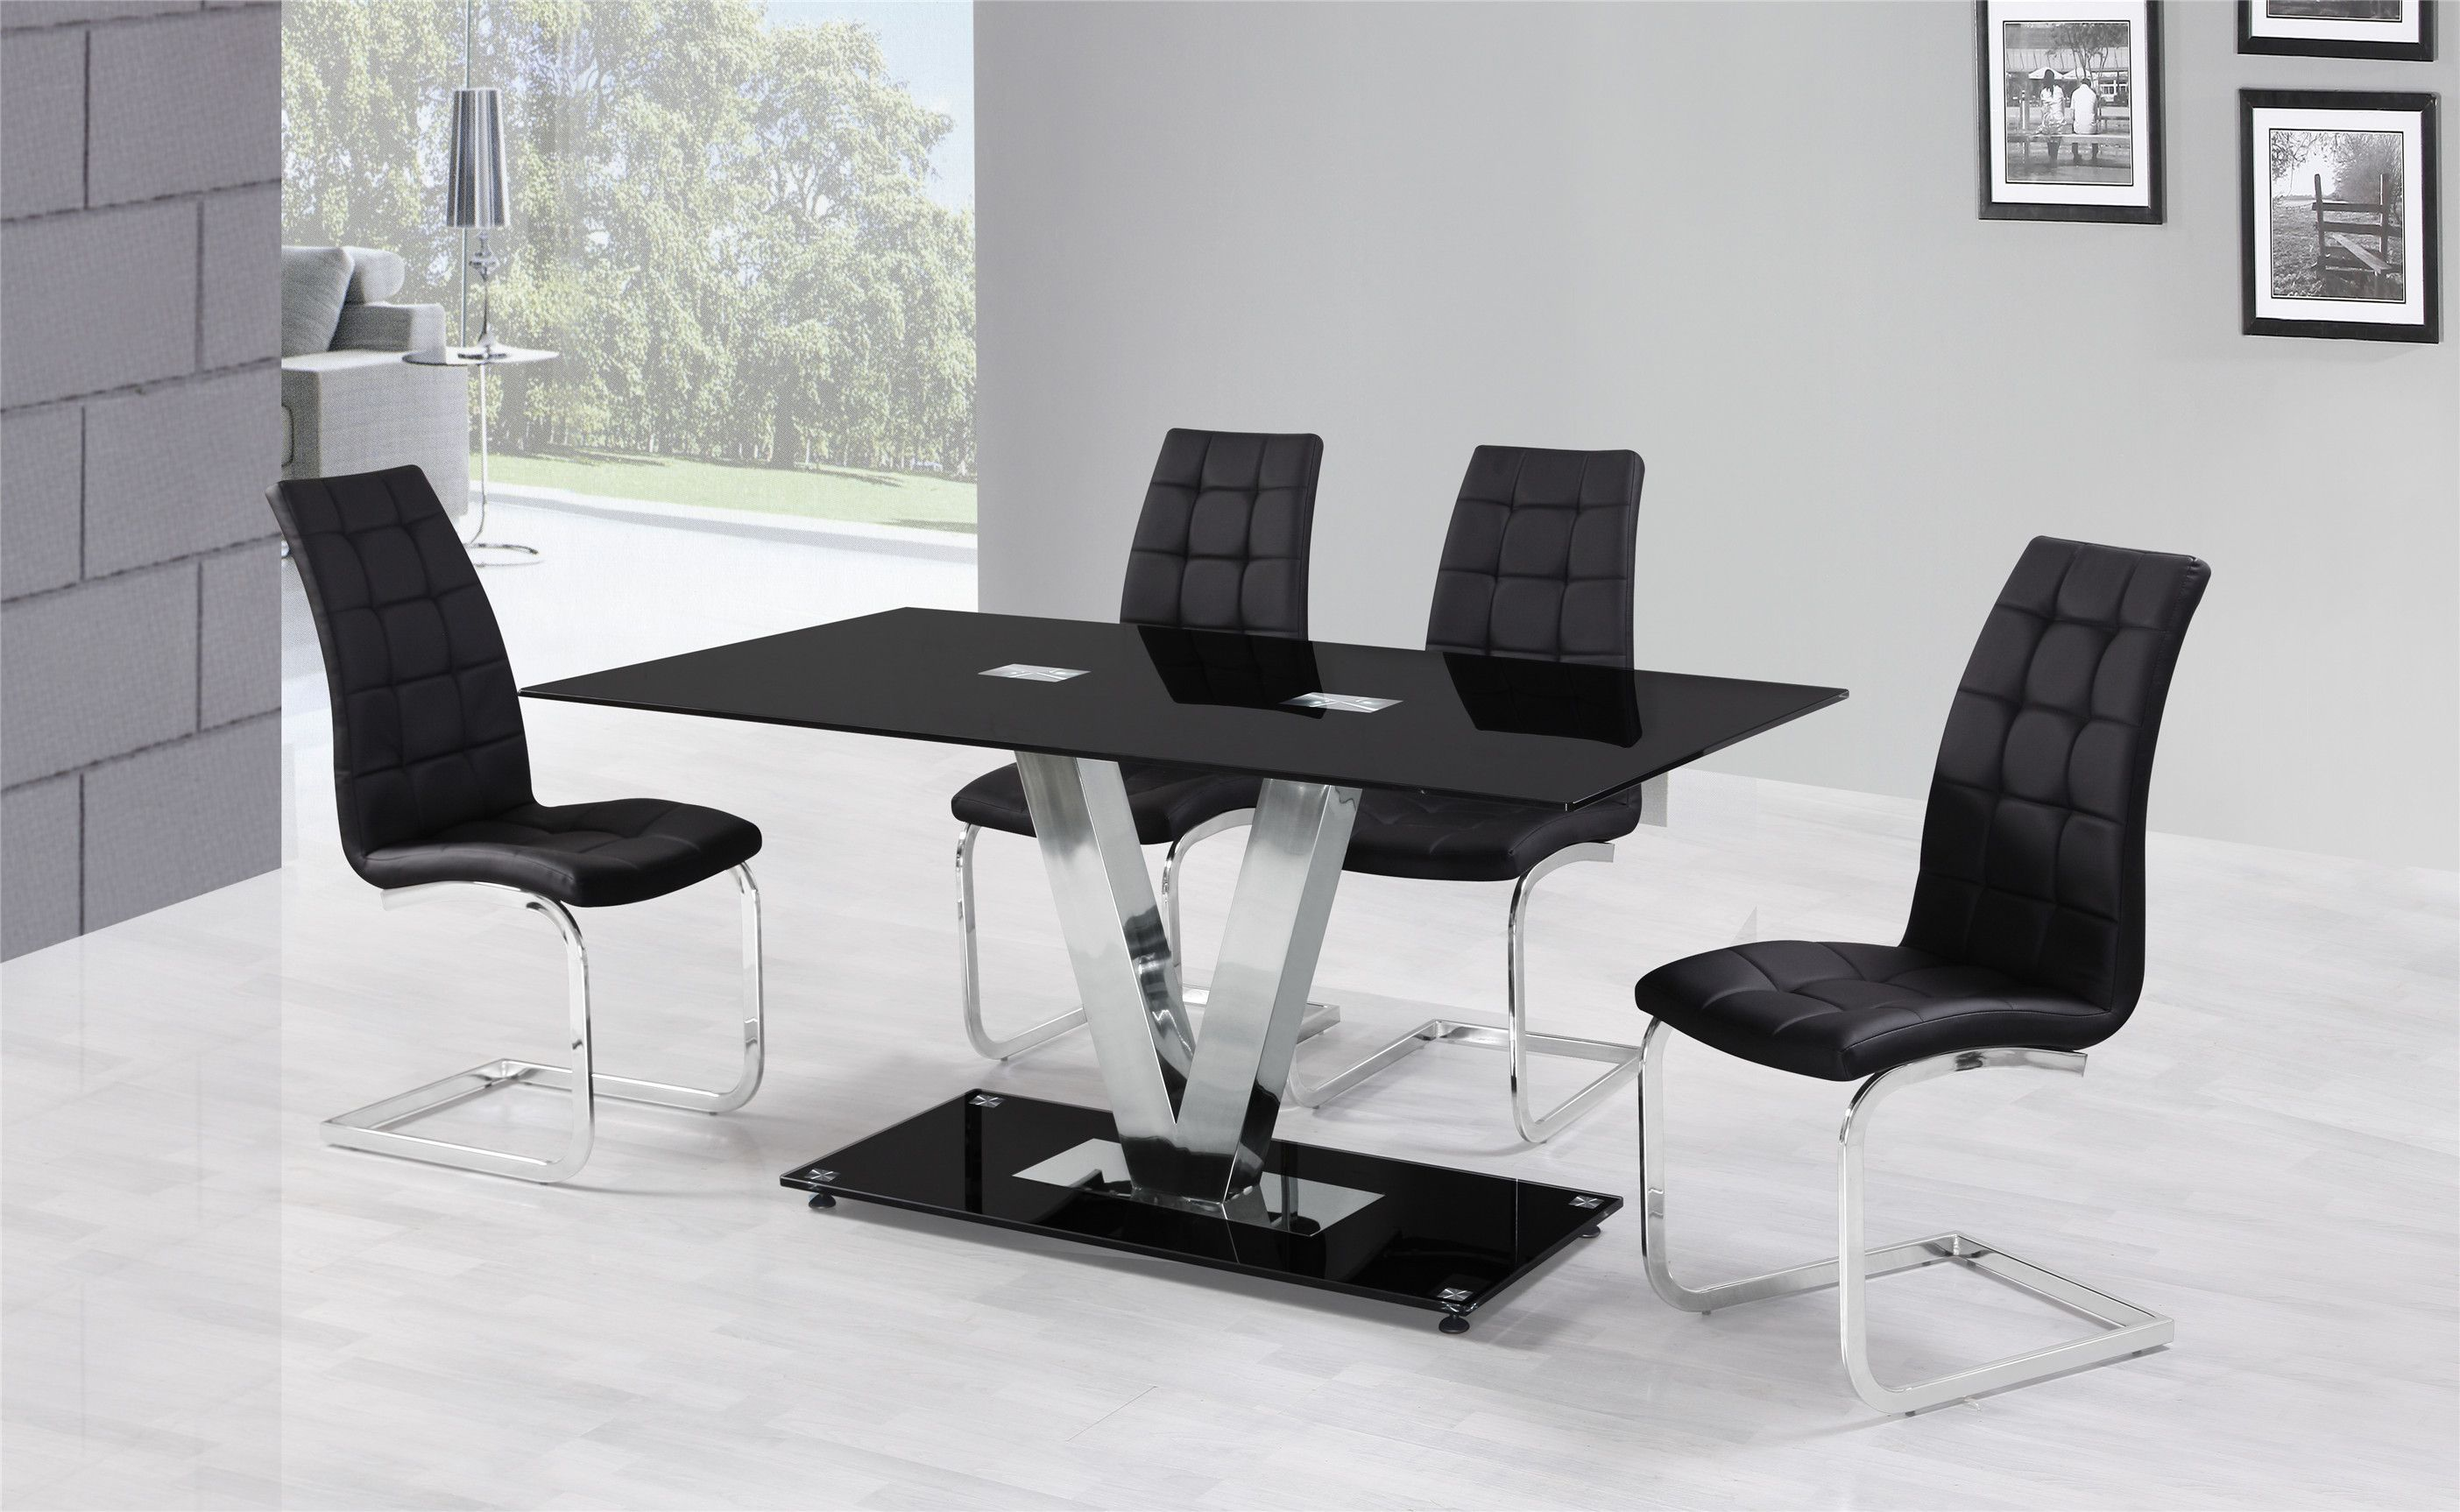 Black Dining Room Table And Chair Glass Kitchen Tables Glass Round Dining Table Luxury Round Dining Table